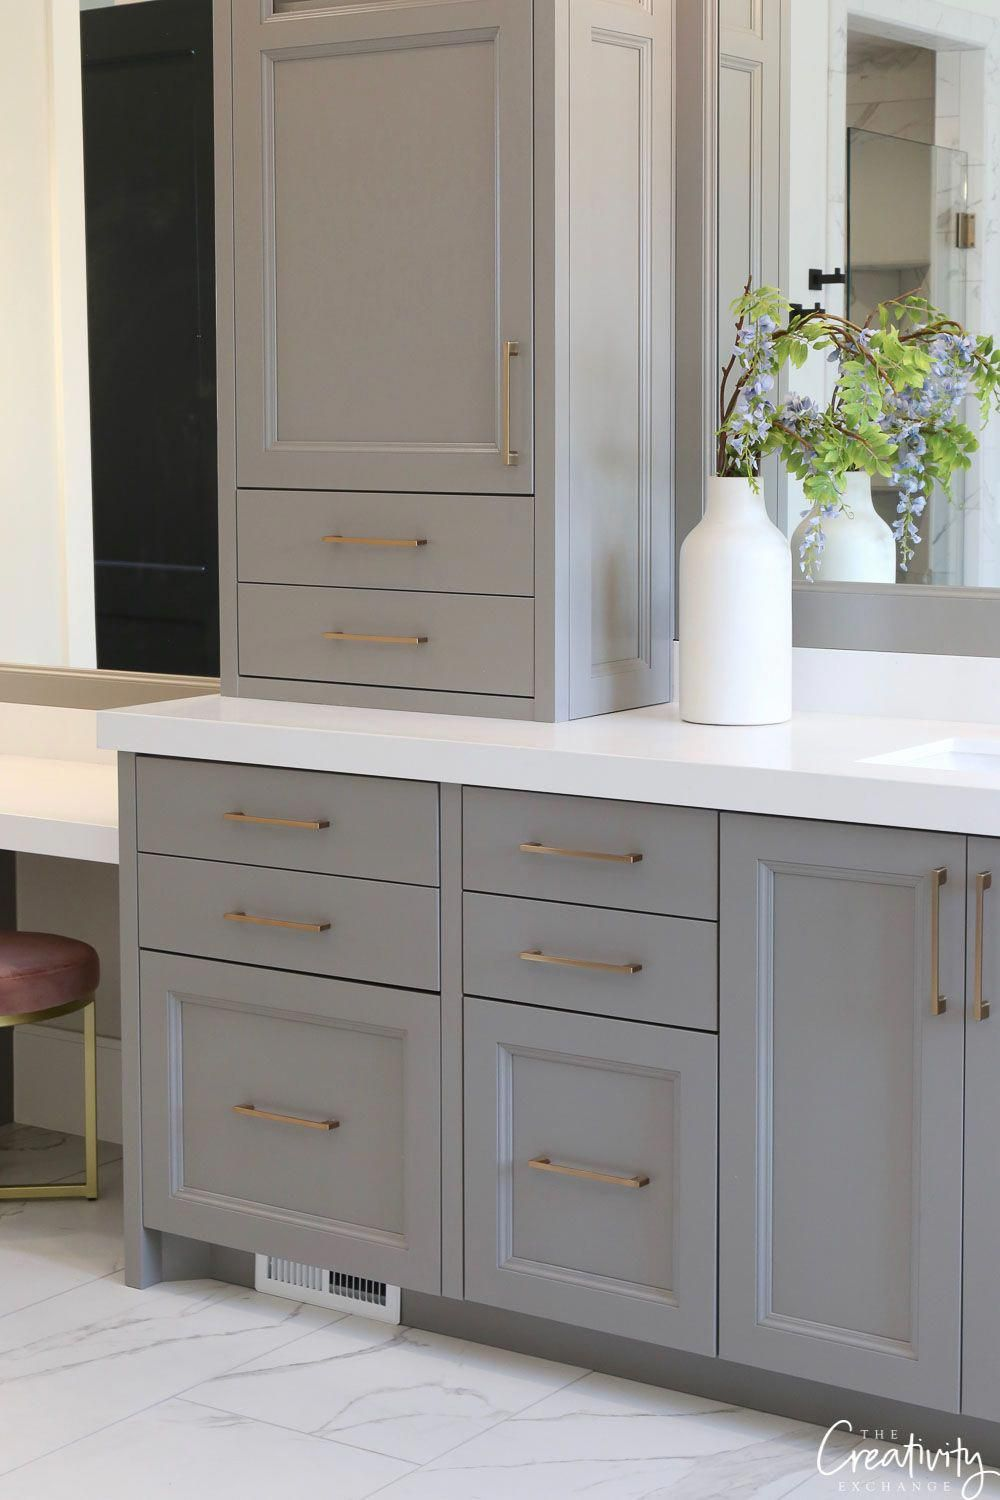 Read More About Decorating Your Bathroom Counter Tops Simply Click Here For More Ba Bathroom Cabinet Colors Painted Vanity Bathroom Painting Bathroom Cabinets